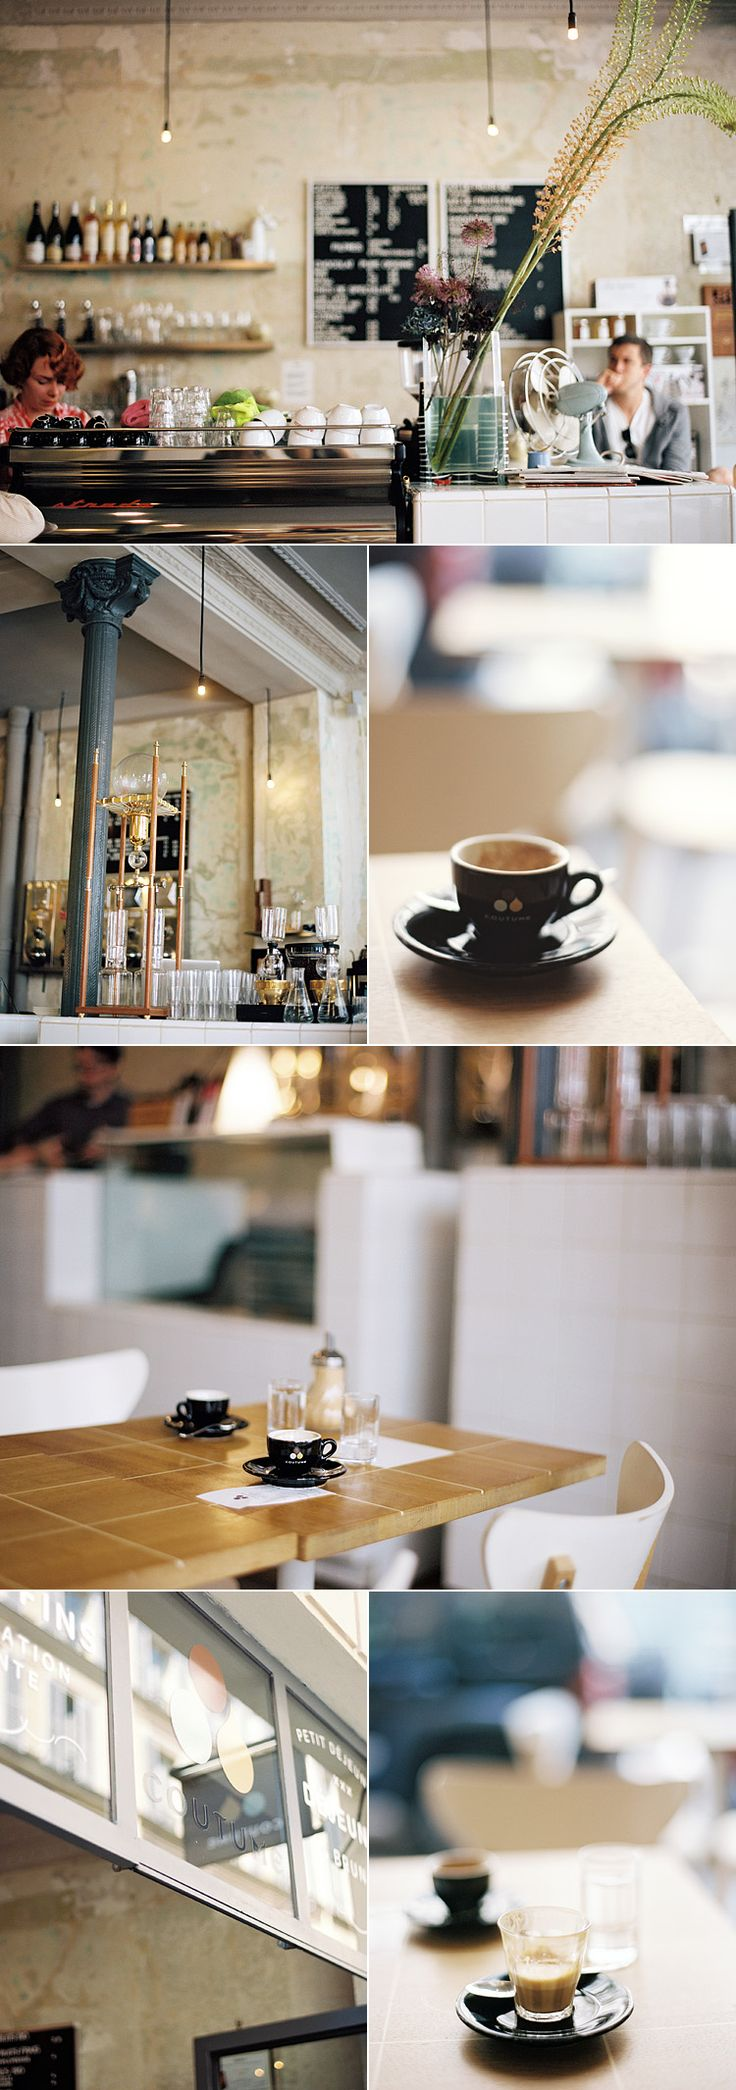 lingered upon: Where we had coffee in Paris. Télescope, Le Bal, Kooka Bourra, Coutume Café.